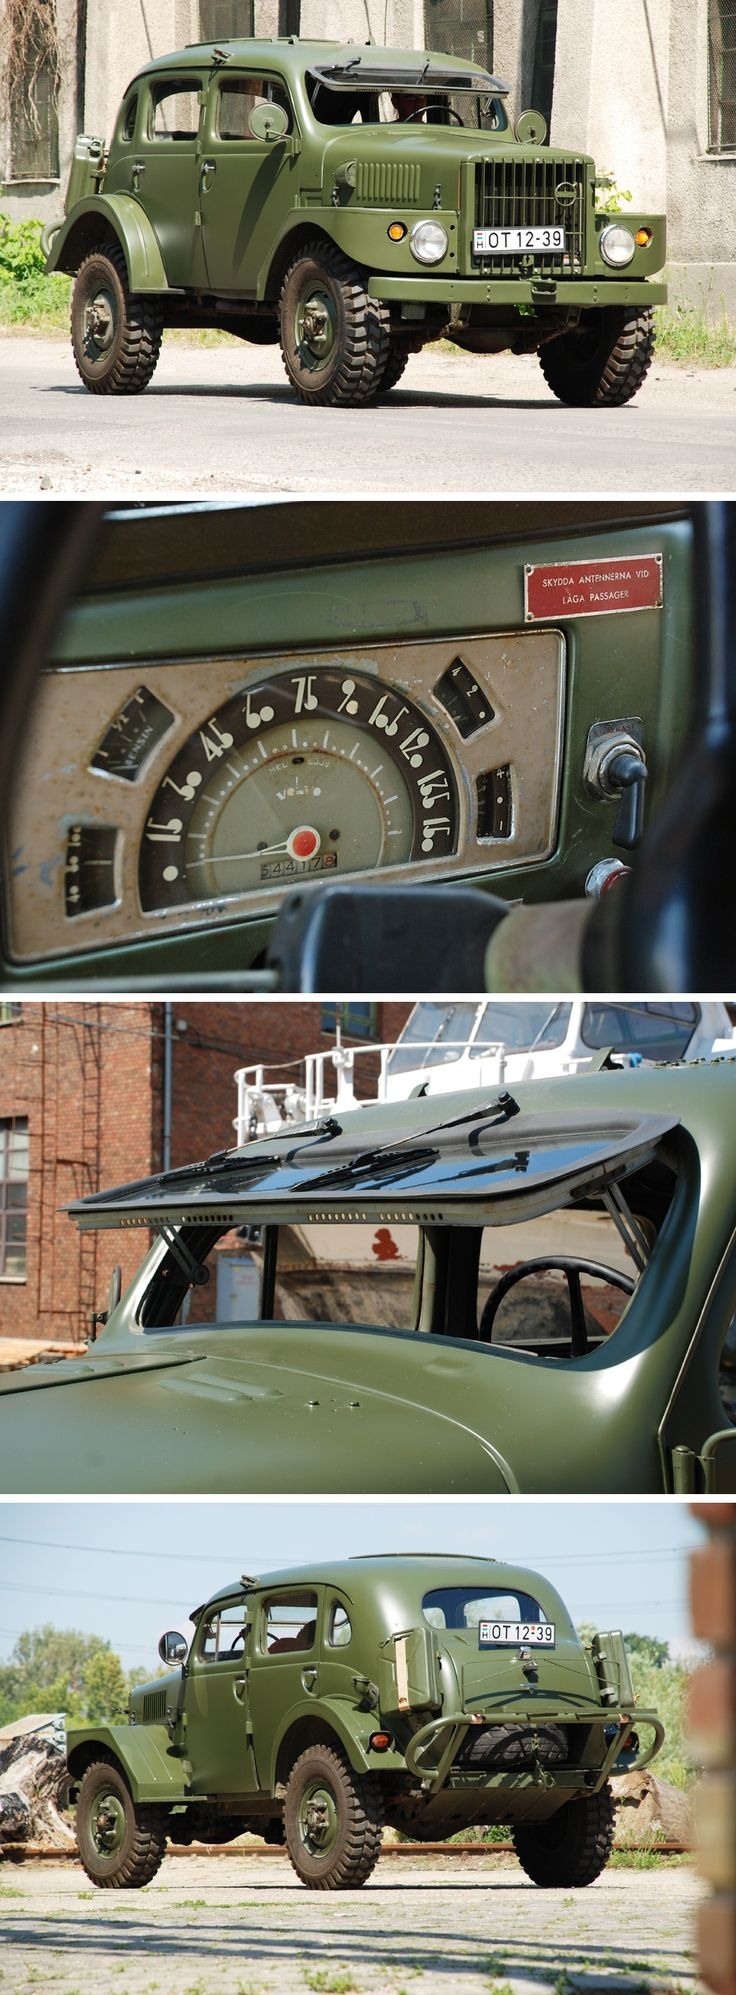 1956 Volvo TP21 Sugga - check out the font used on the instrument panel!